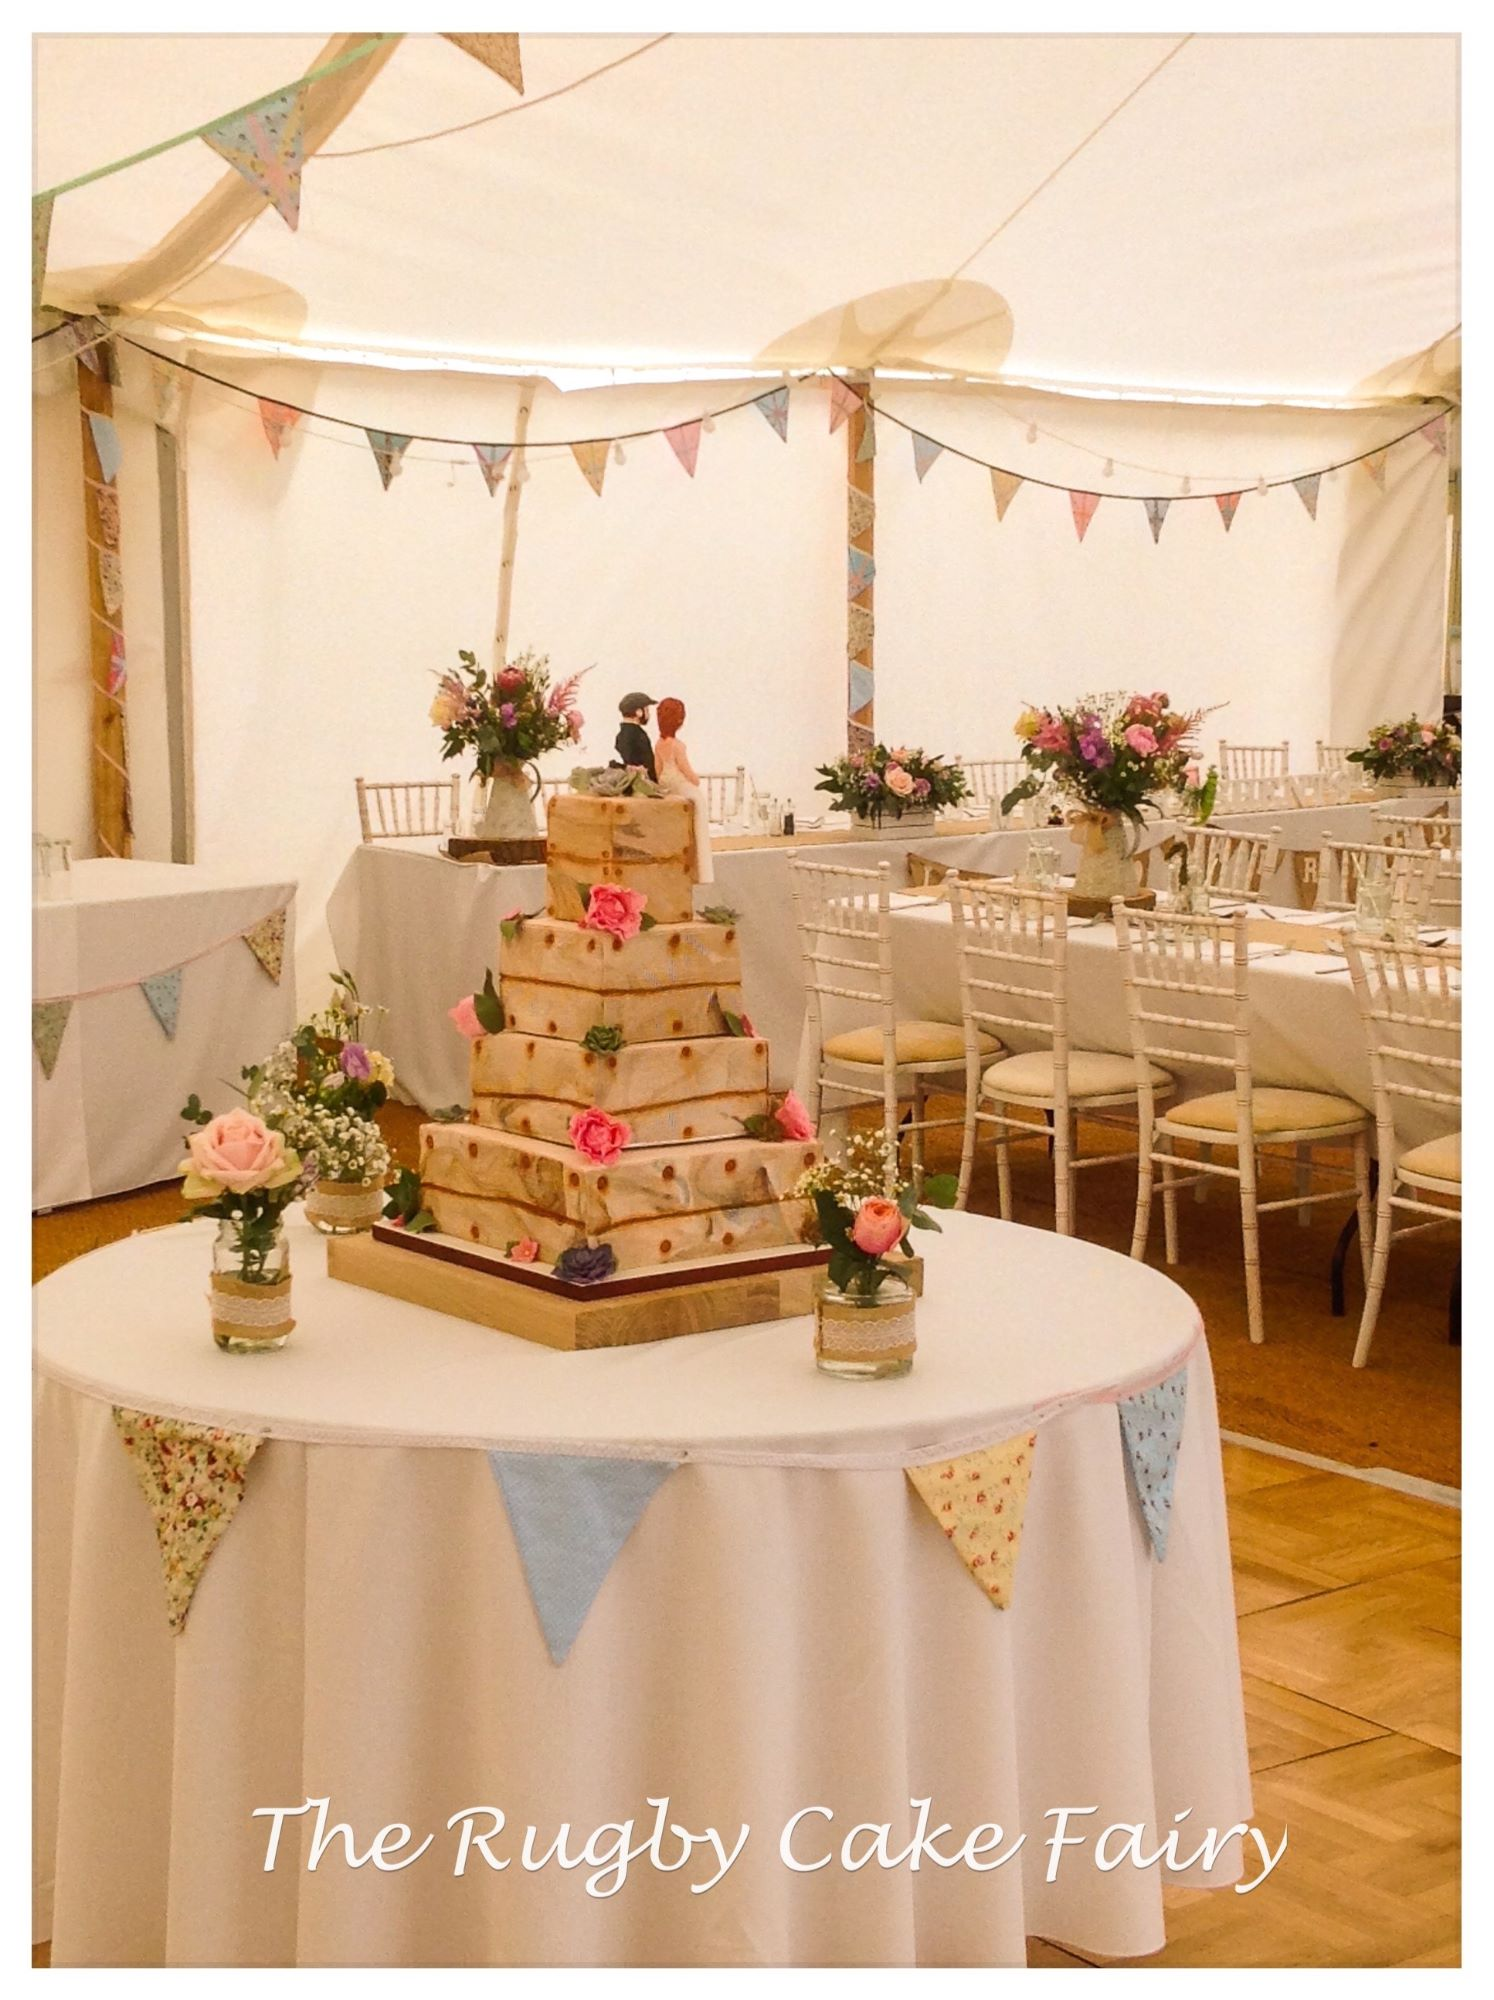 lemon crate wedding cake rear view venue